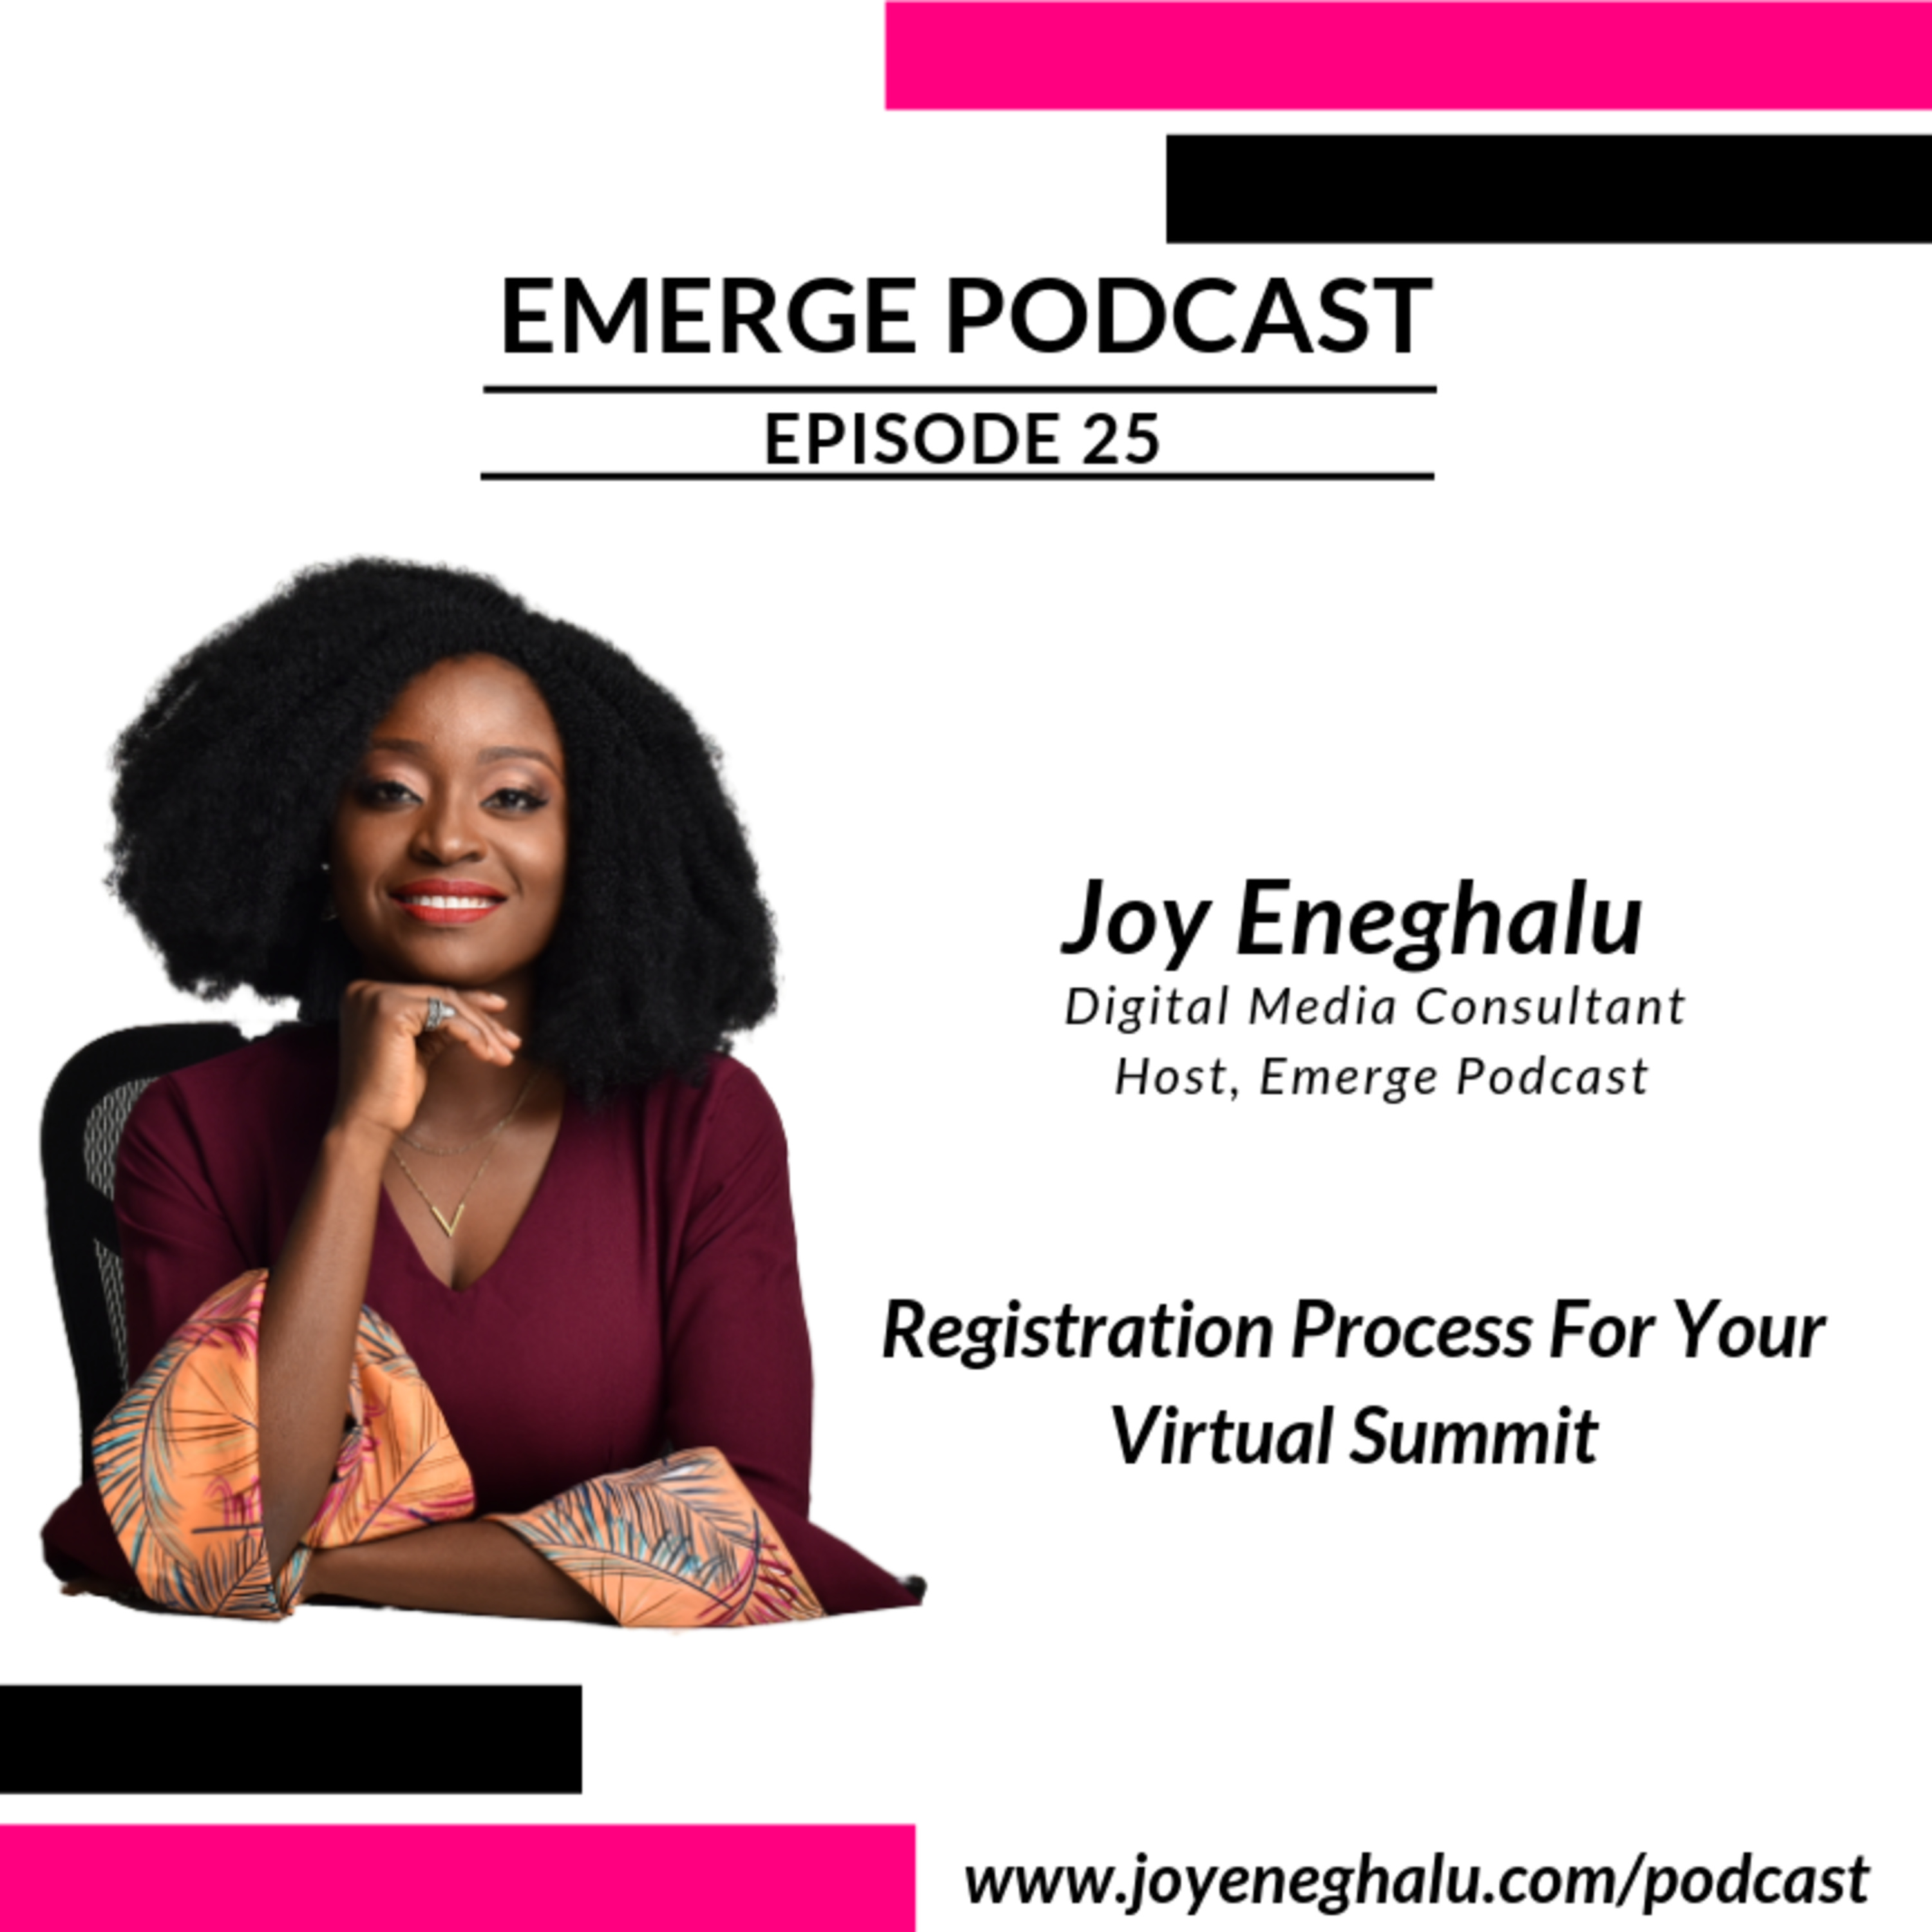 EP 25 - Registration Process For Your Virtual Summit